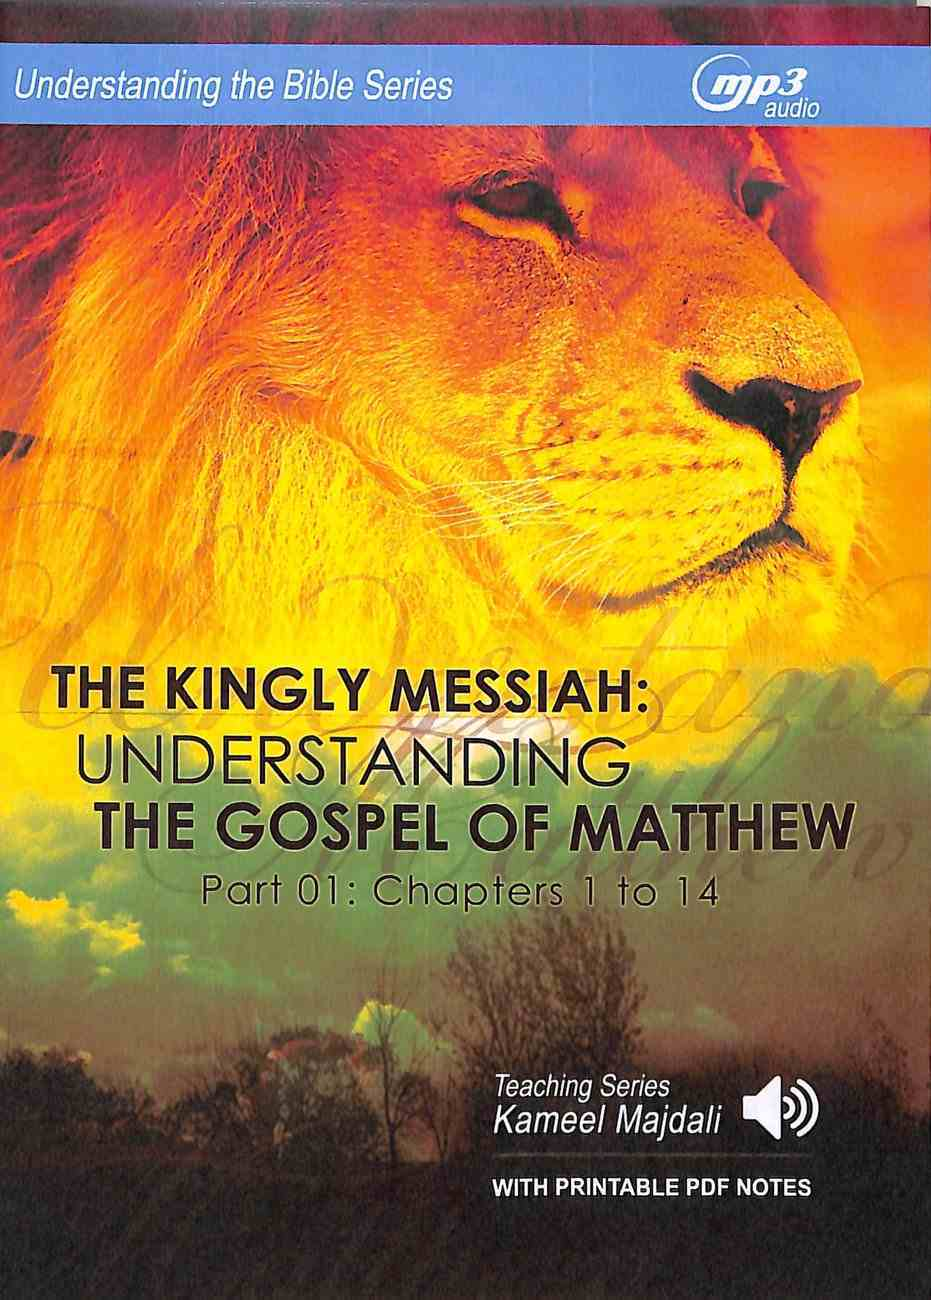 Kingly Messiah, the : Understanding the Gospel of Matthew, Chapters 1 to 14 (With Printable Pdf Notes) (Part 1, MP3 Audio, 18 Hrs) (Understanding The Bible Audio Series) CD